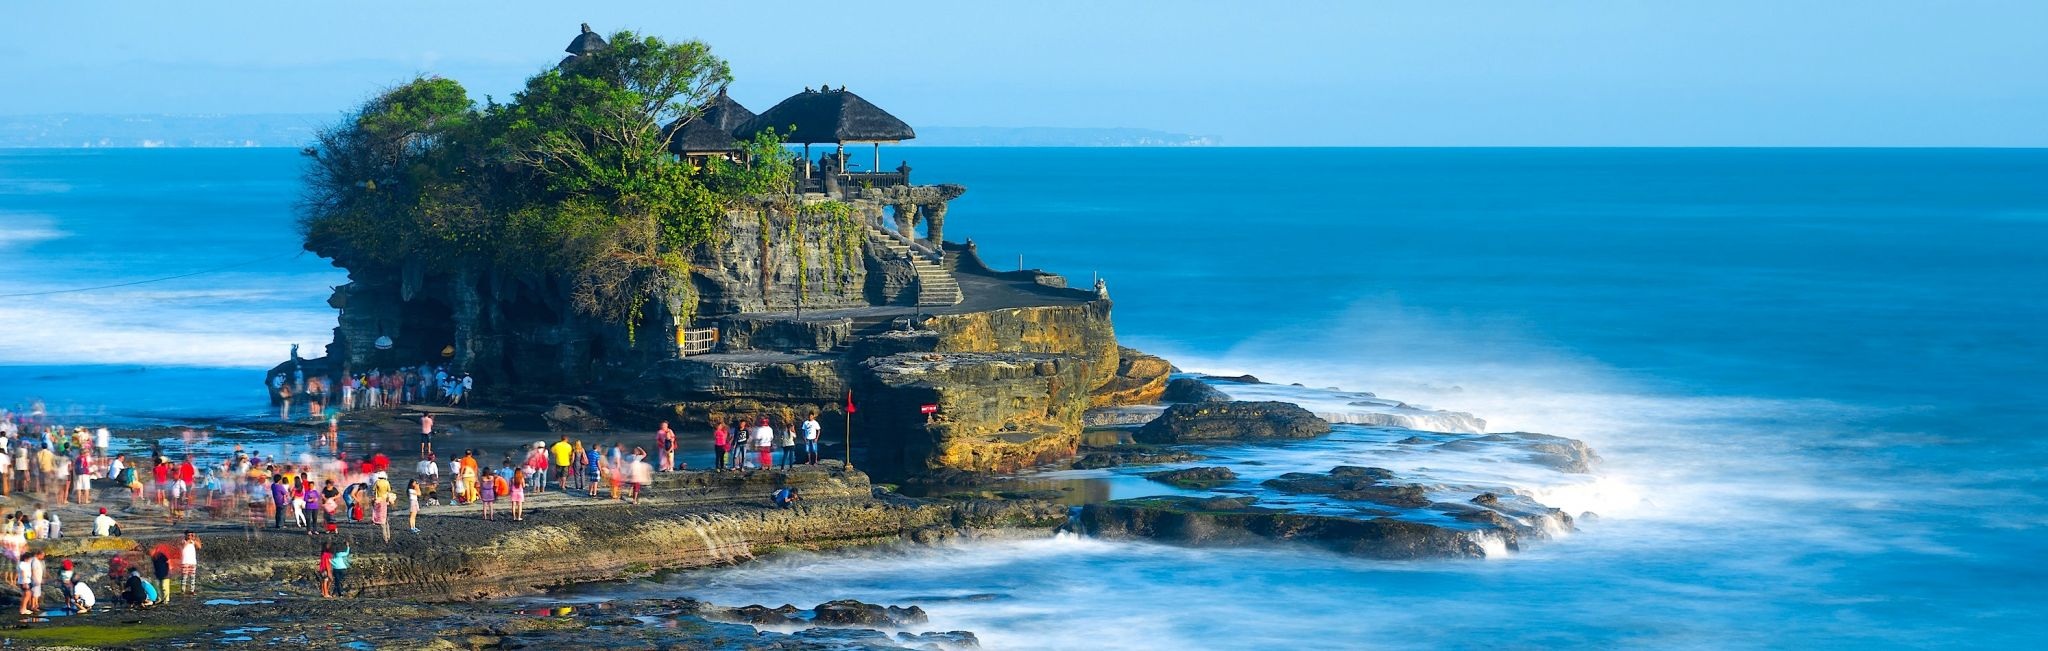 Bali Vacation Packages 2017 2018 Bali Tours Amp Vacations Zicasso